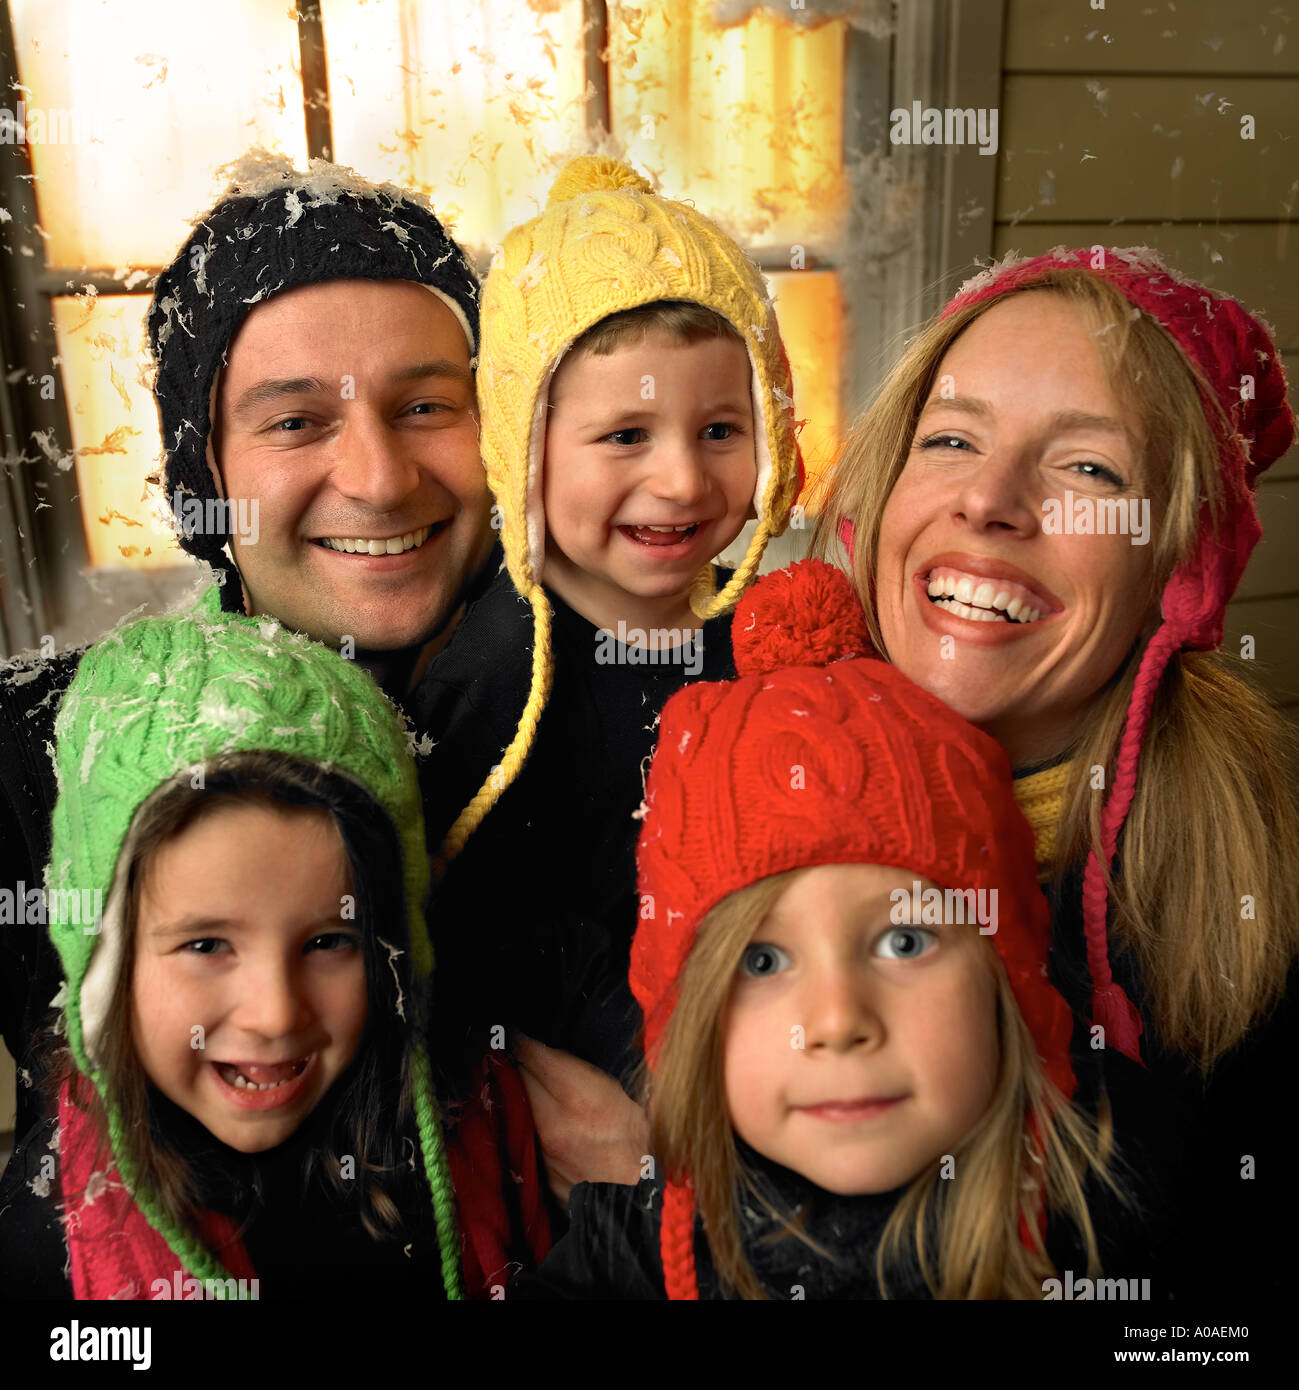 A family poses outside in the snow in front of a home with warmth radiating from the window as well as their expressions. - Stock Image